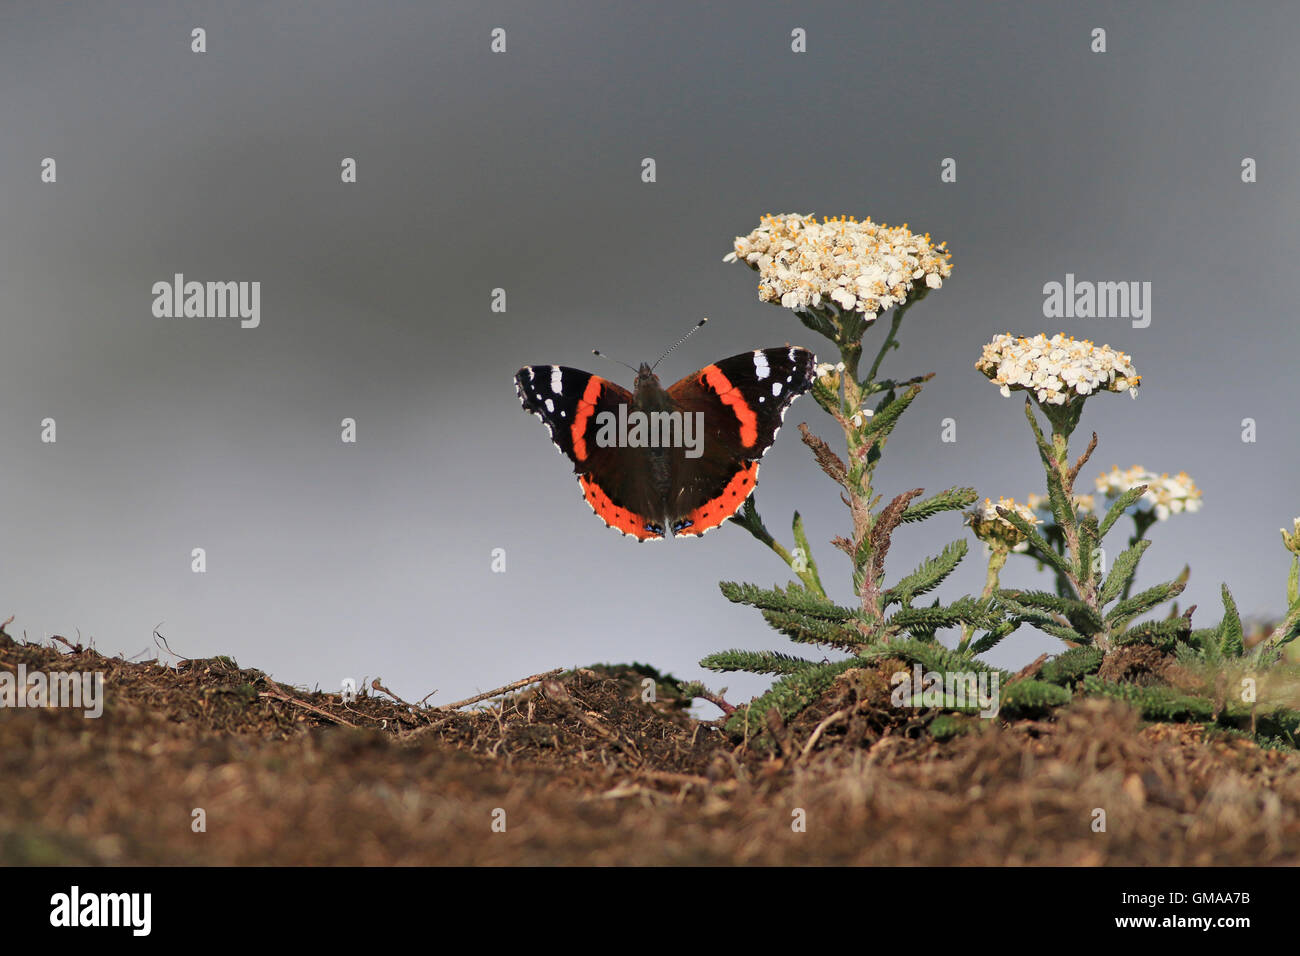 Red admiral butterfly with wings open on Yarrow plant - Stock Image